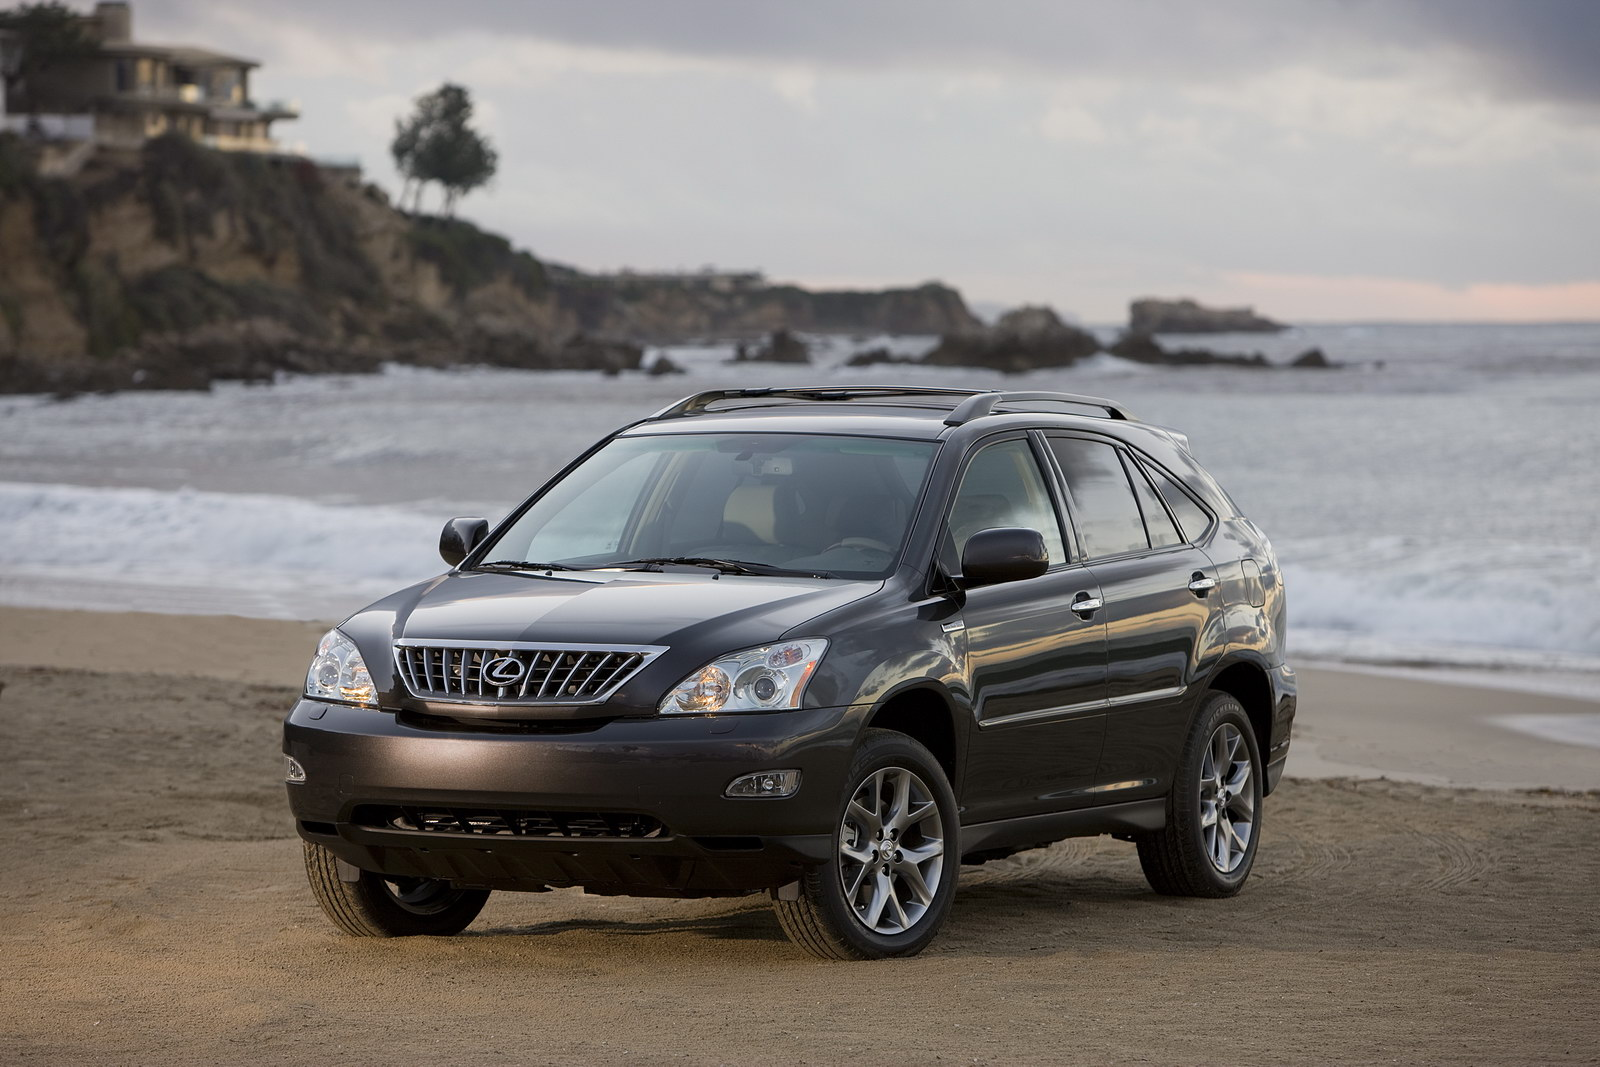 Lexus RX 350 2007 Photo - 1